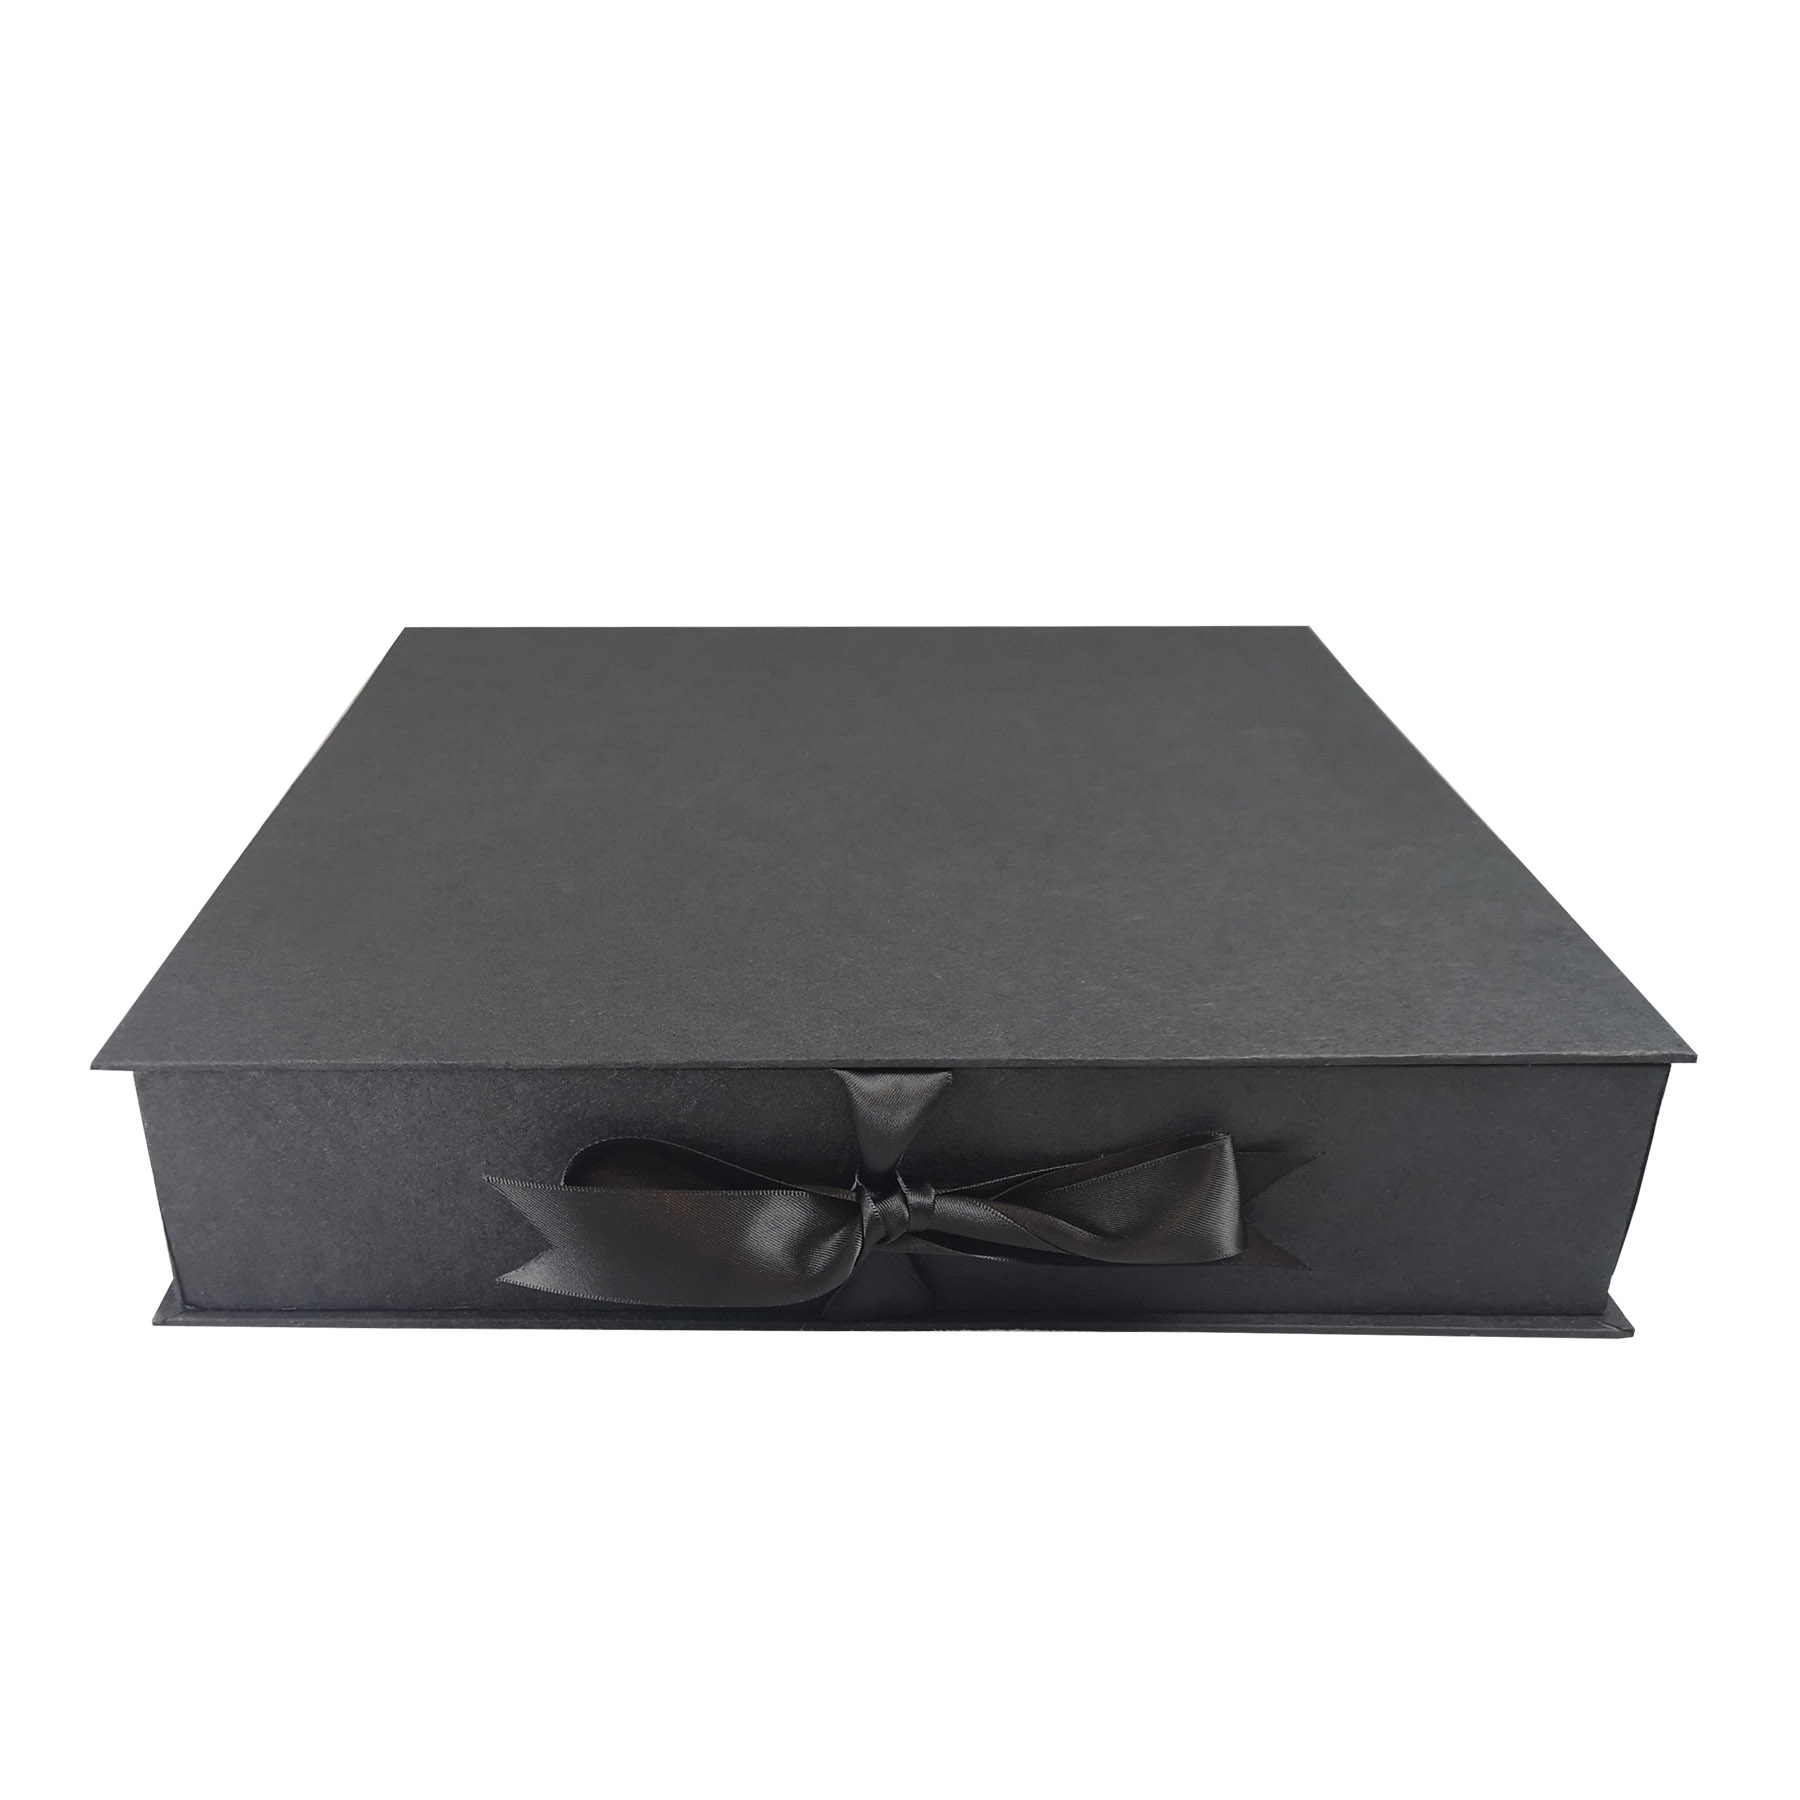 Black saa paper box